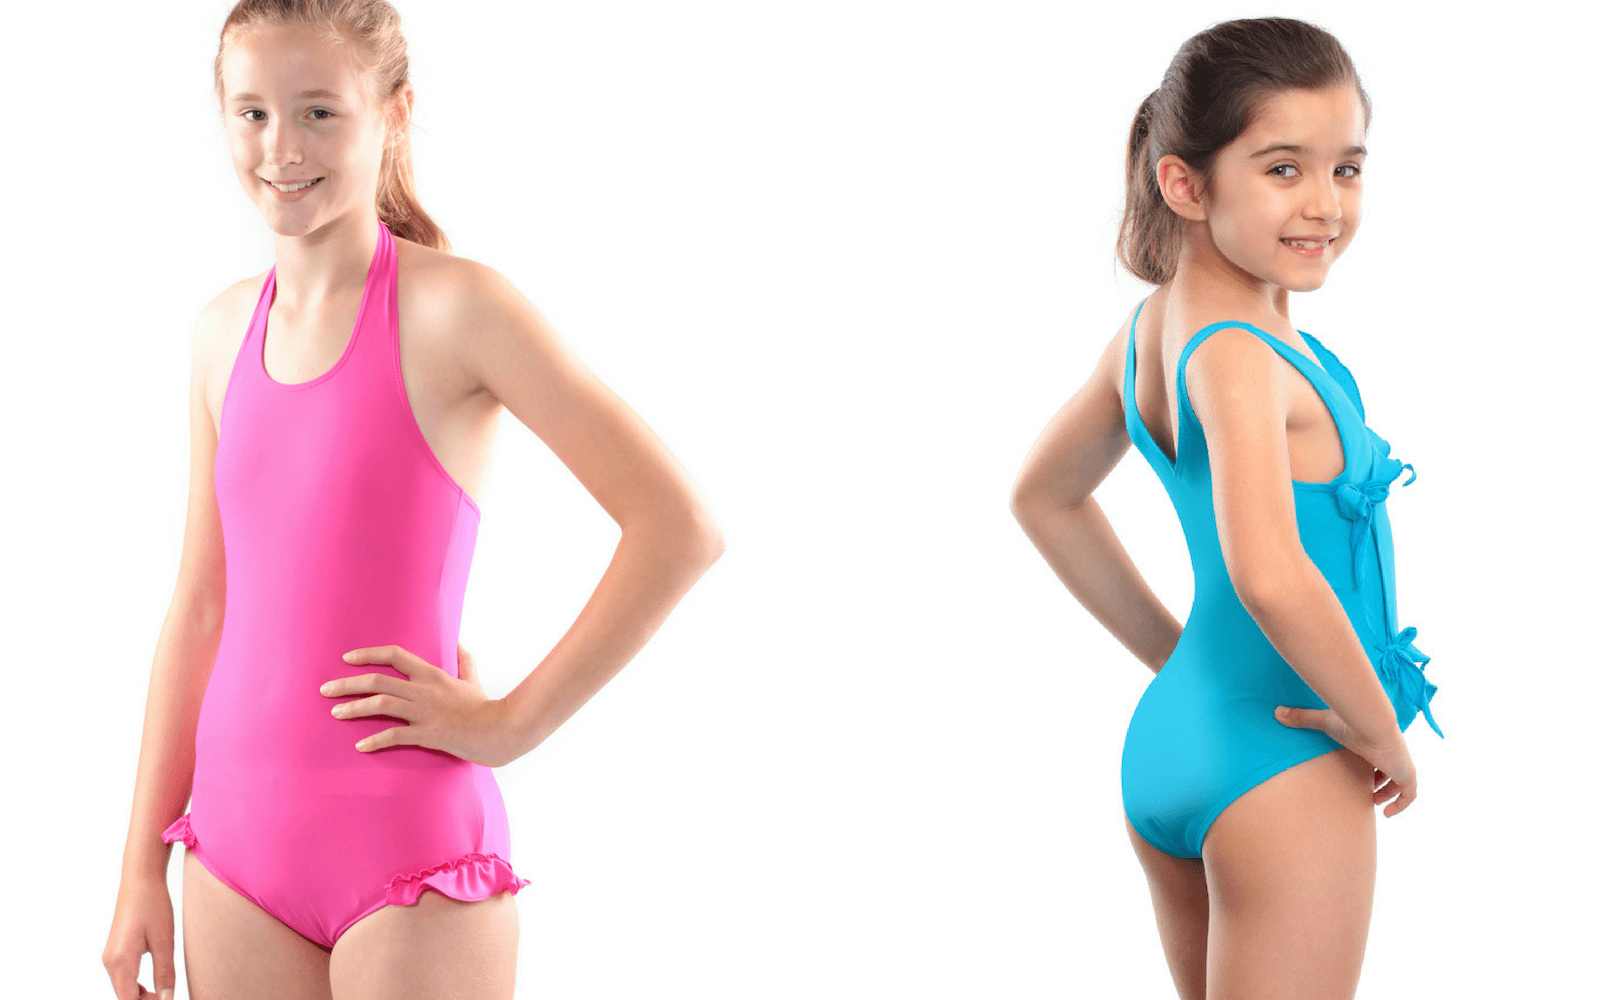 specialist_swimwear_for_special_needs_kids_girls_adaptive_clothing